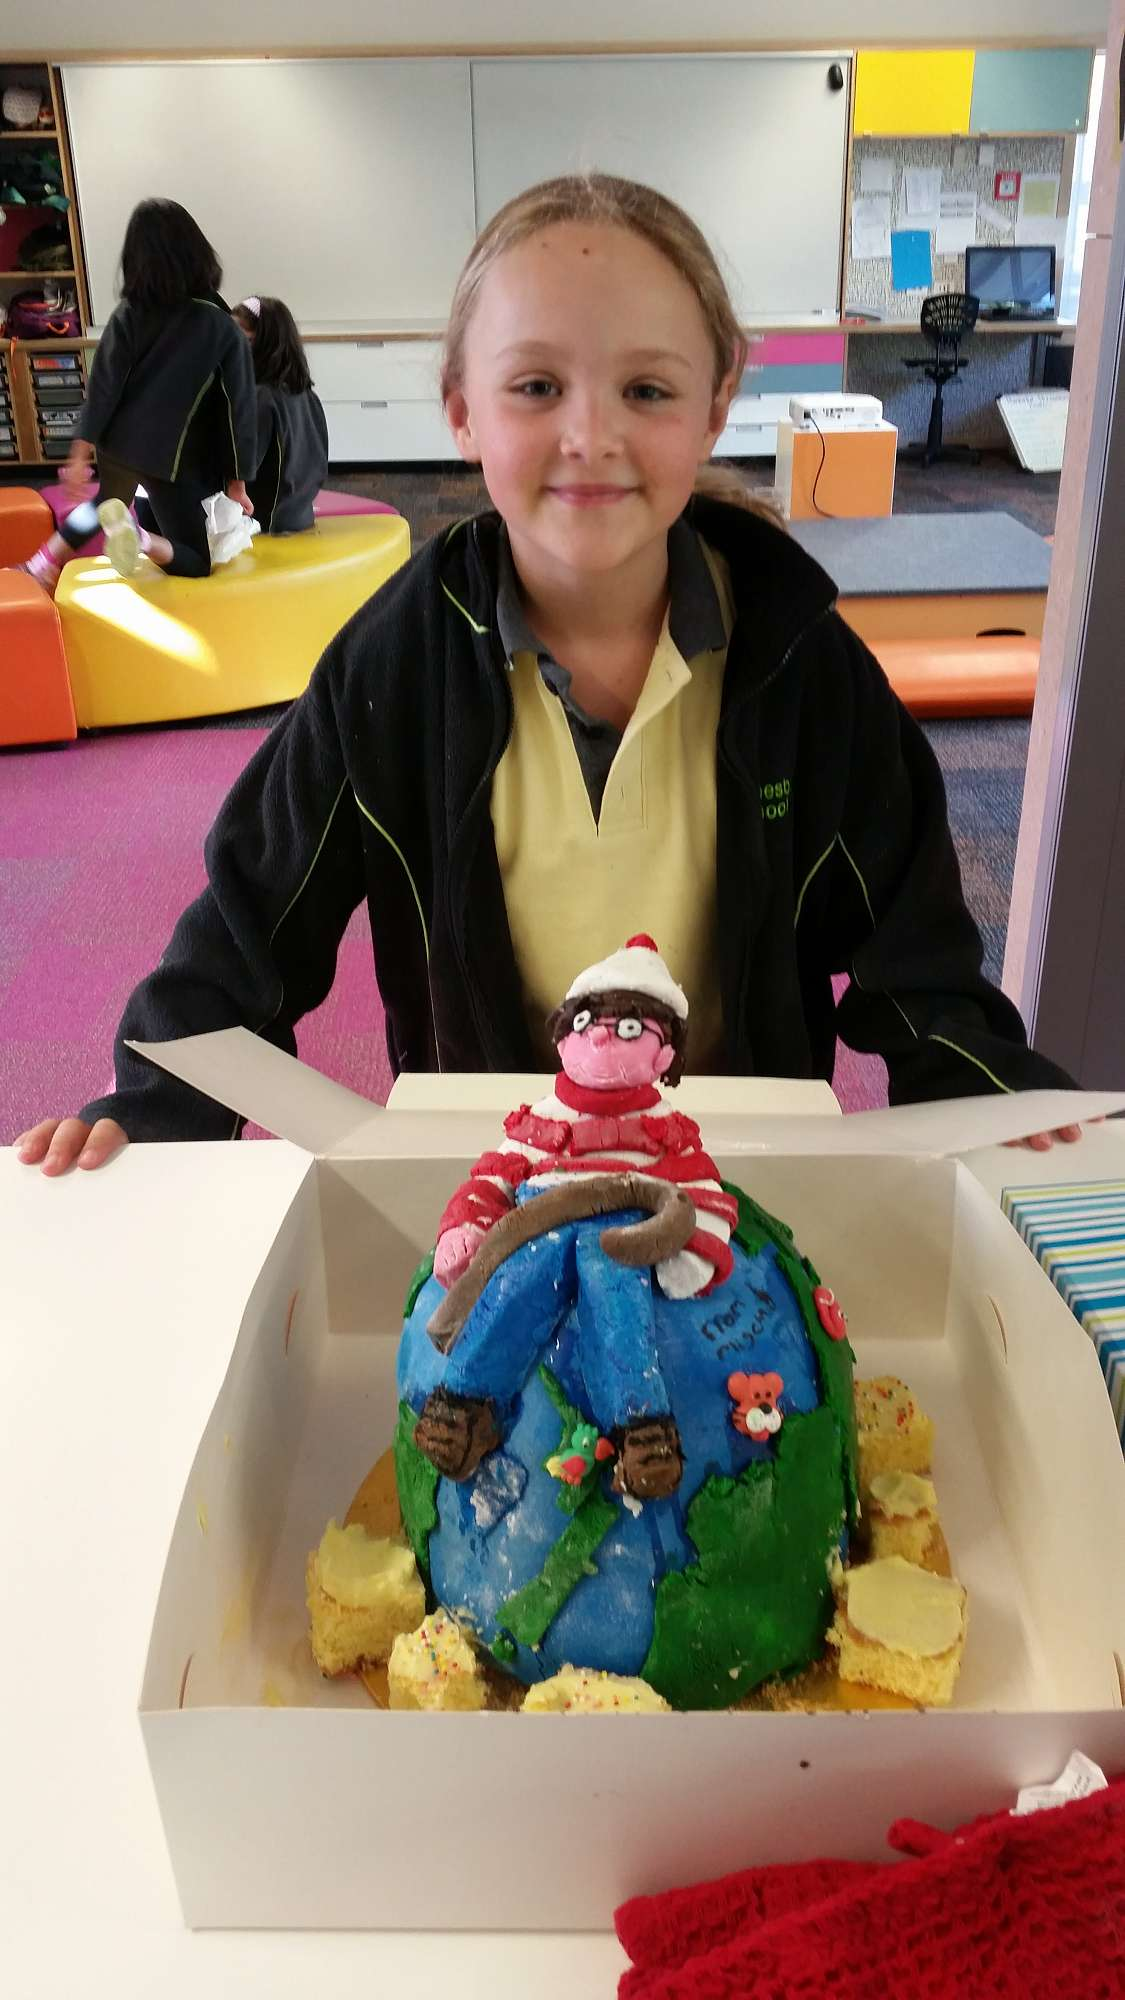 Mischa, with the amazing 'Where's Wally?' cake she made with Kirsty for our Living Globally inquiry.